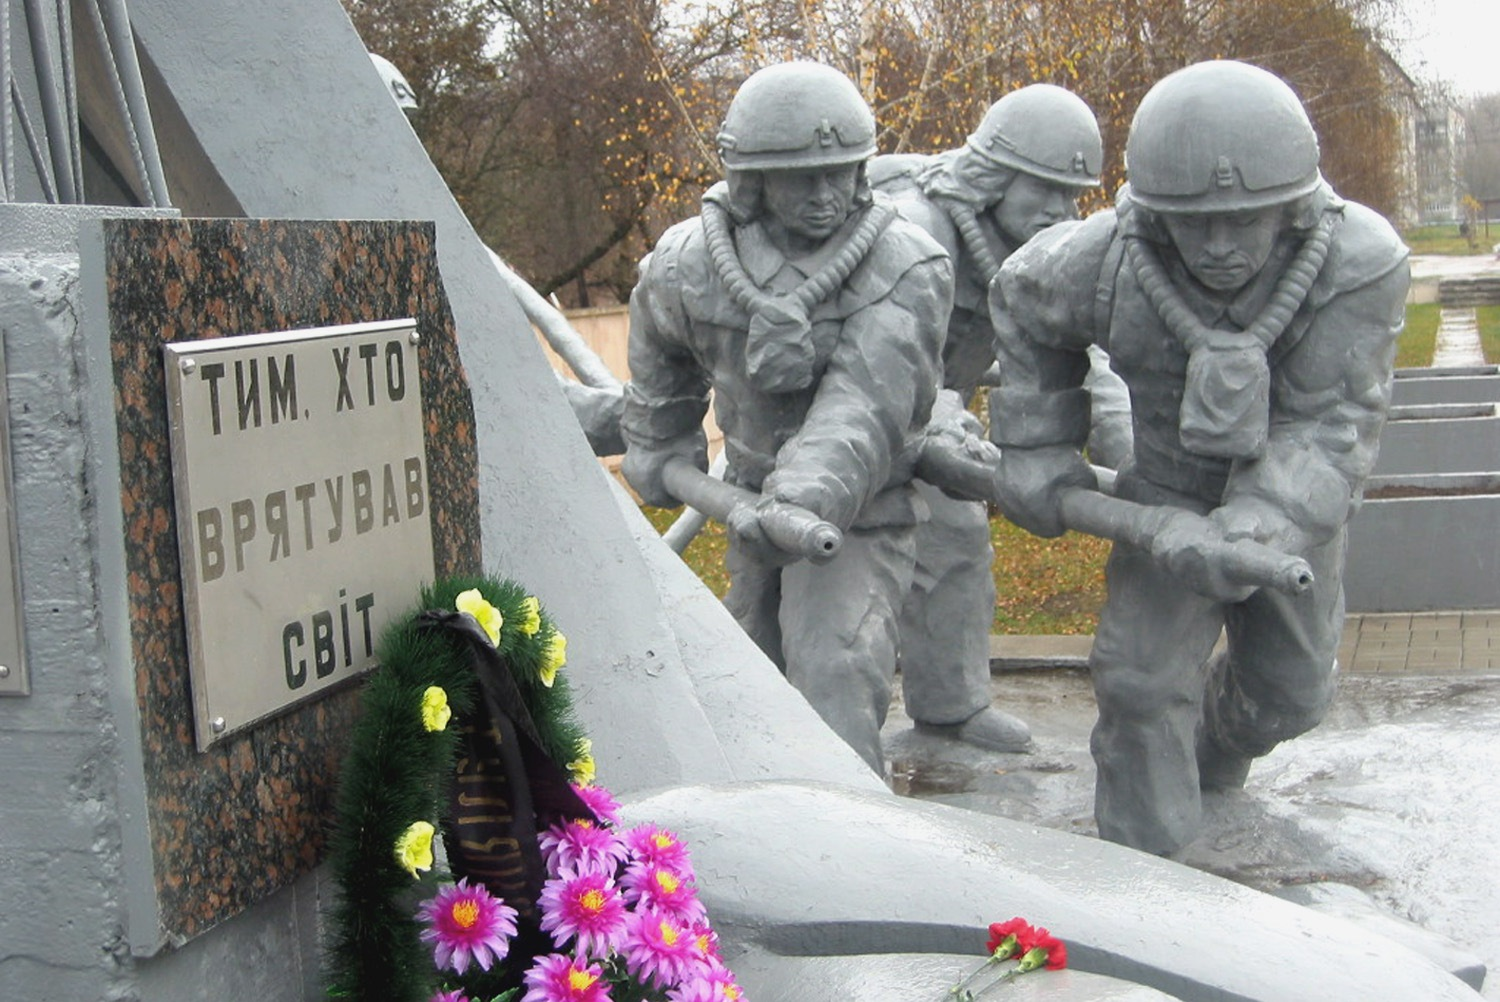 Chernobyl Firefighters Monument